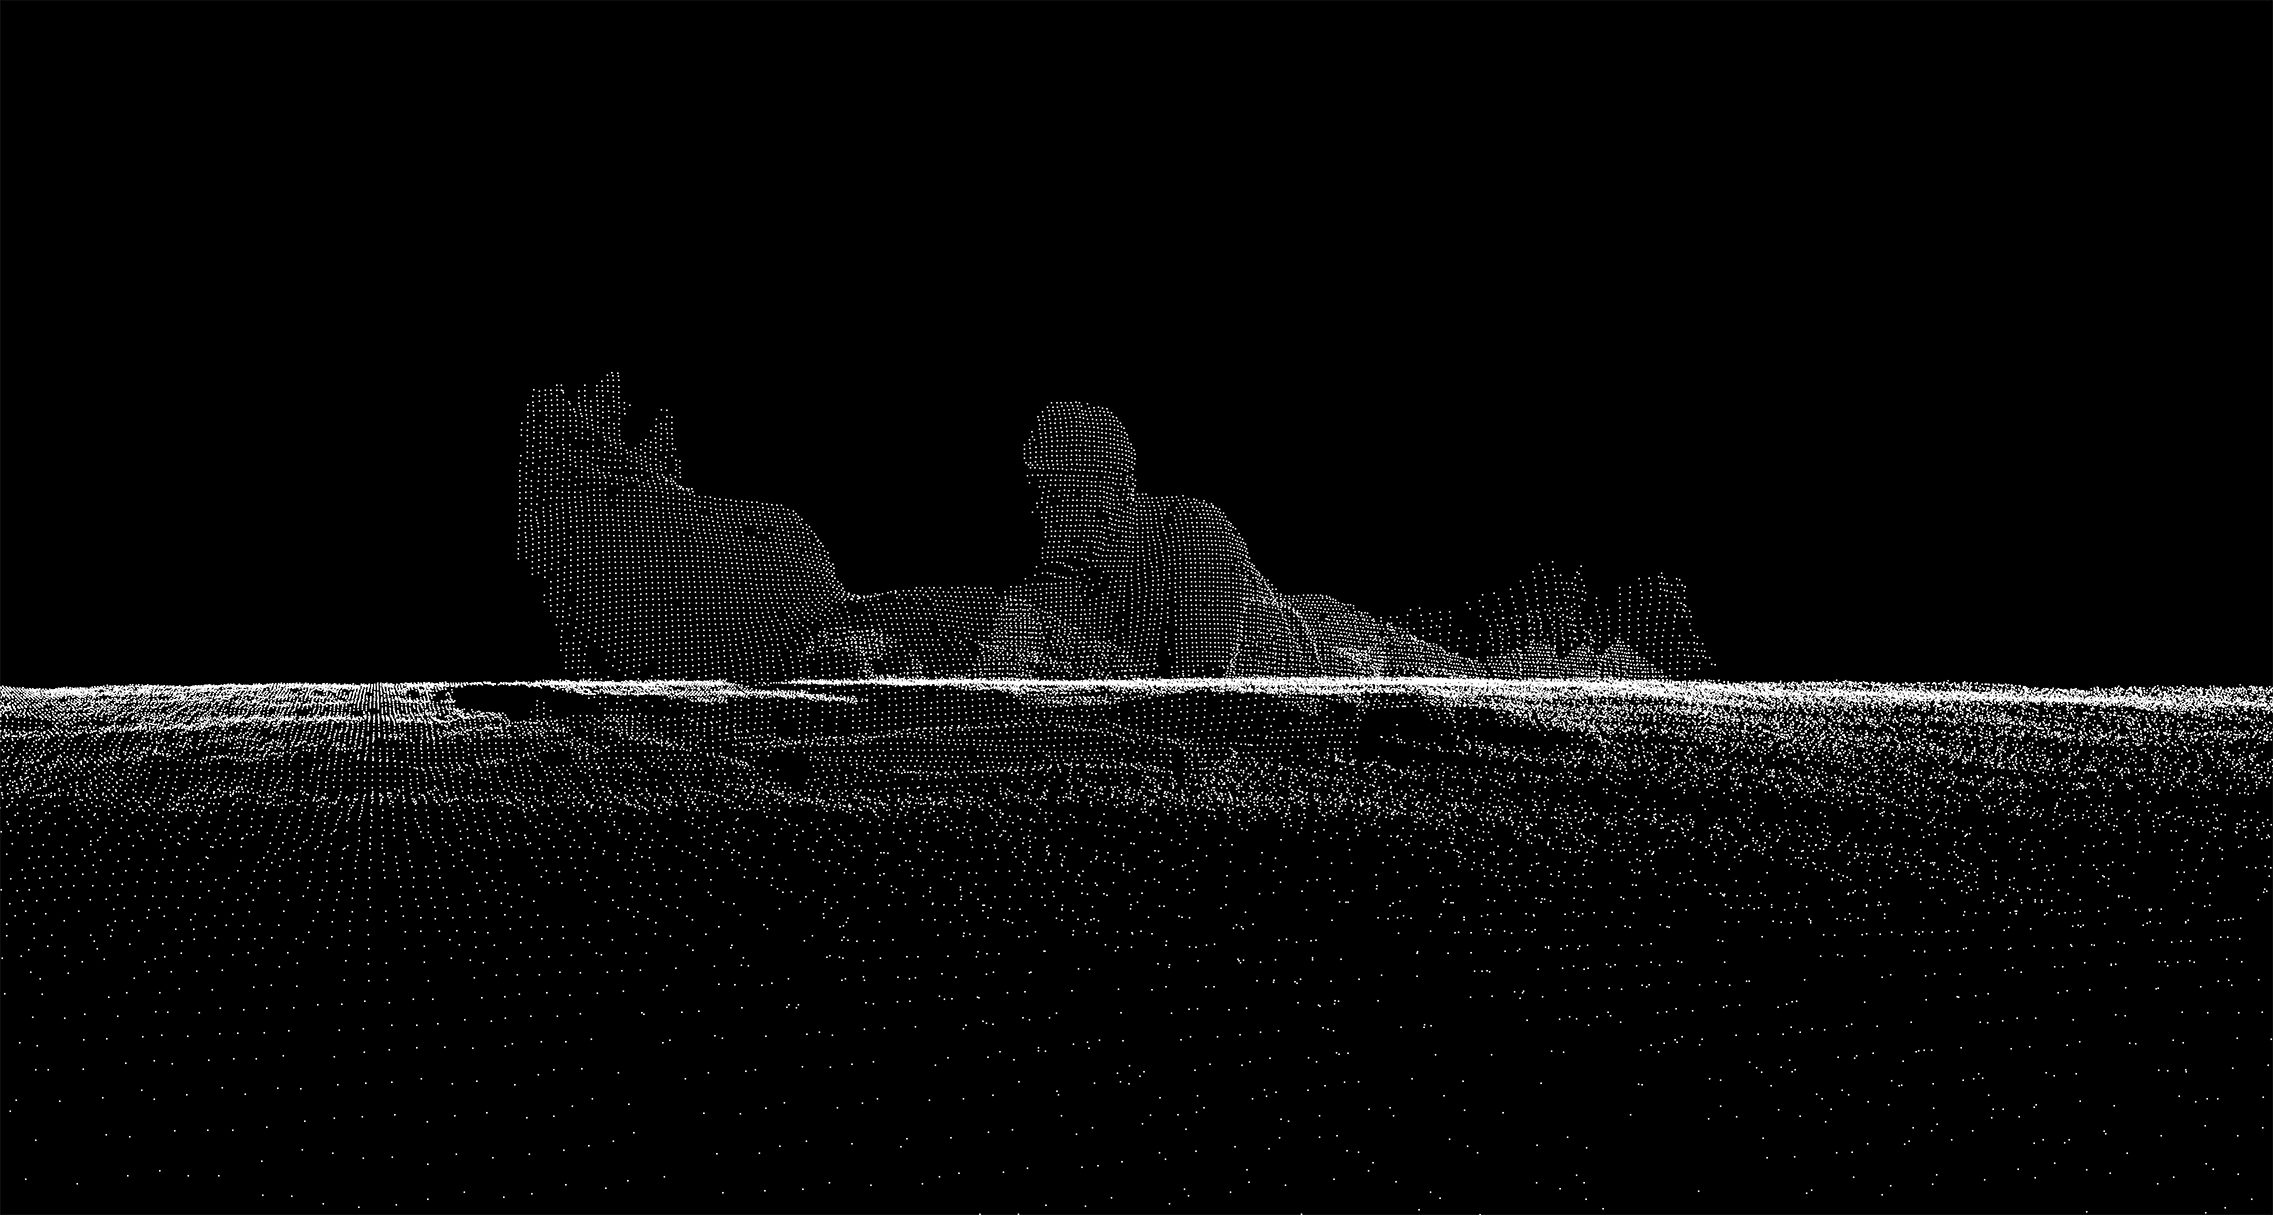 mynd-workshop-central-park-couple2-3D-laser-scanning-point-cloud-new-york.jpg